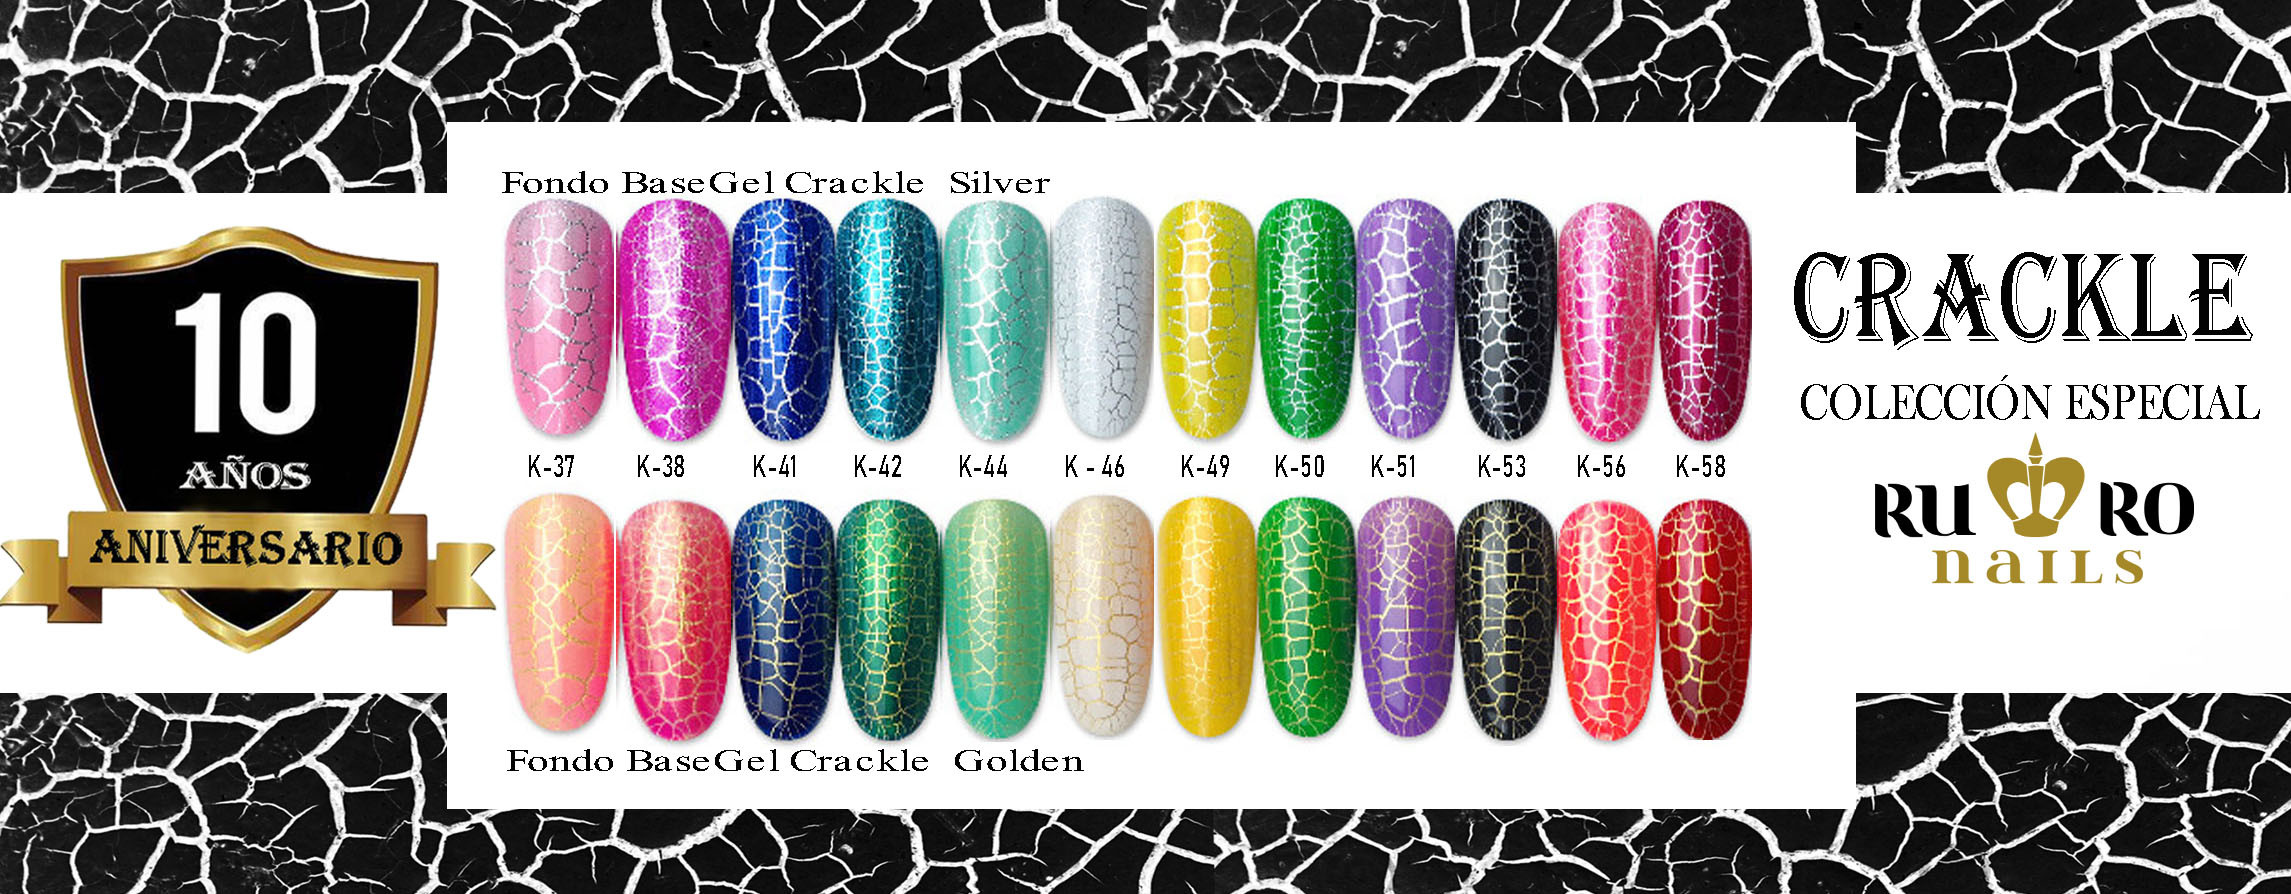 CRACKLE COLLECTION